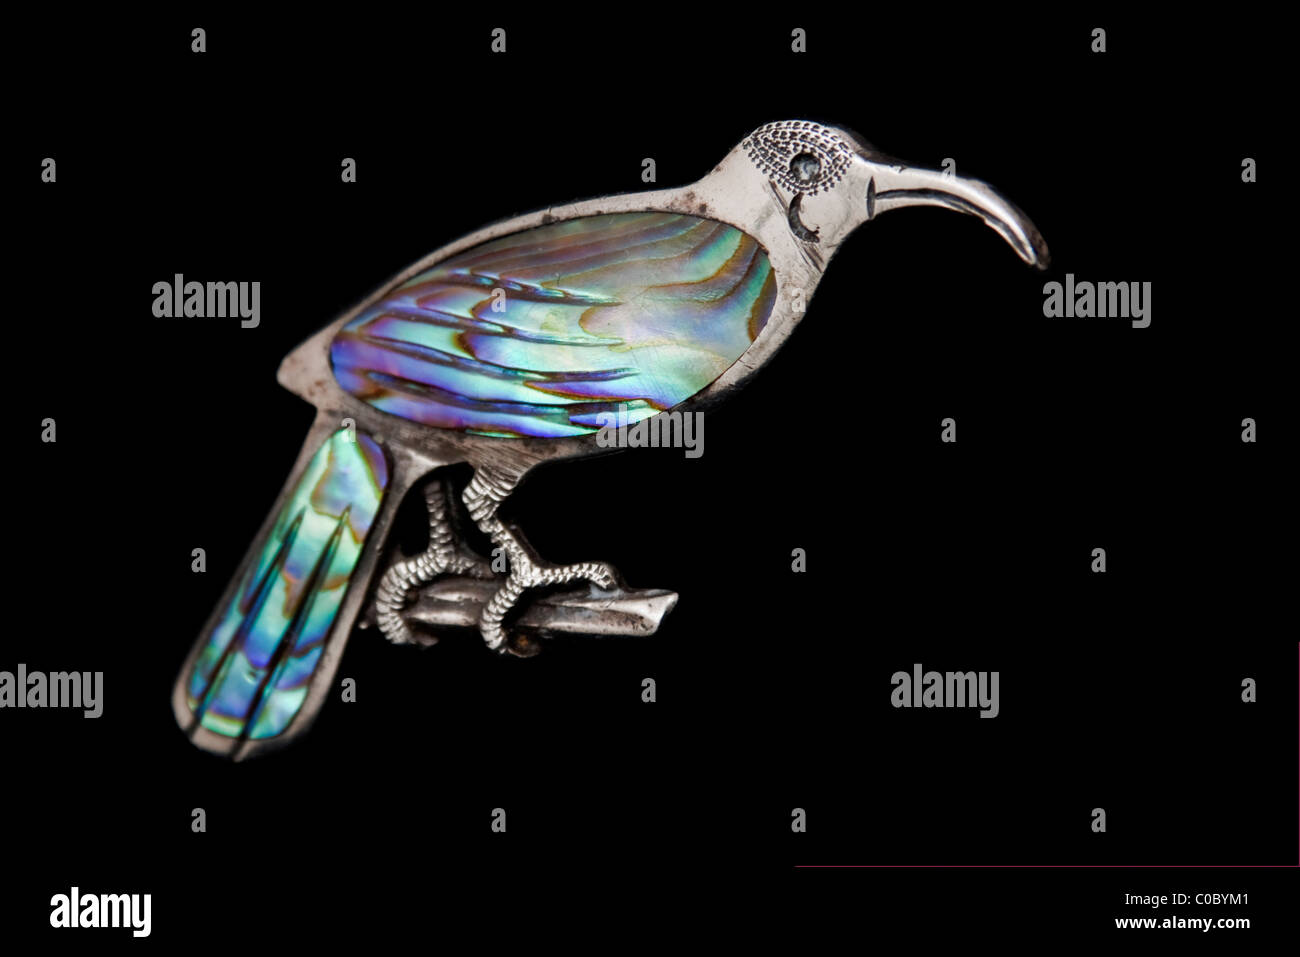 Rare Edwardian Sterling Silver brooch of the Huia bird  (now extinct) from New Zealand - Stock Image